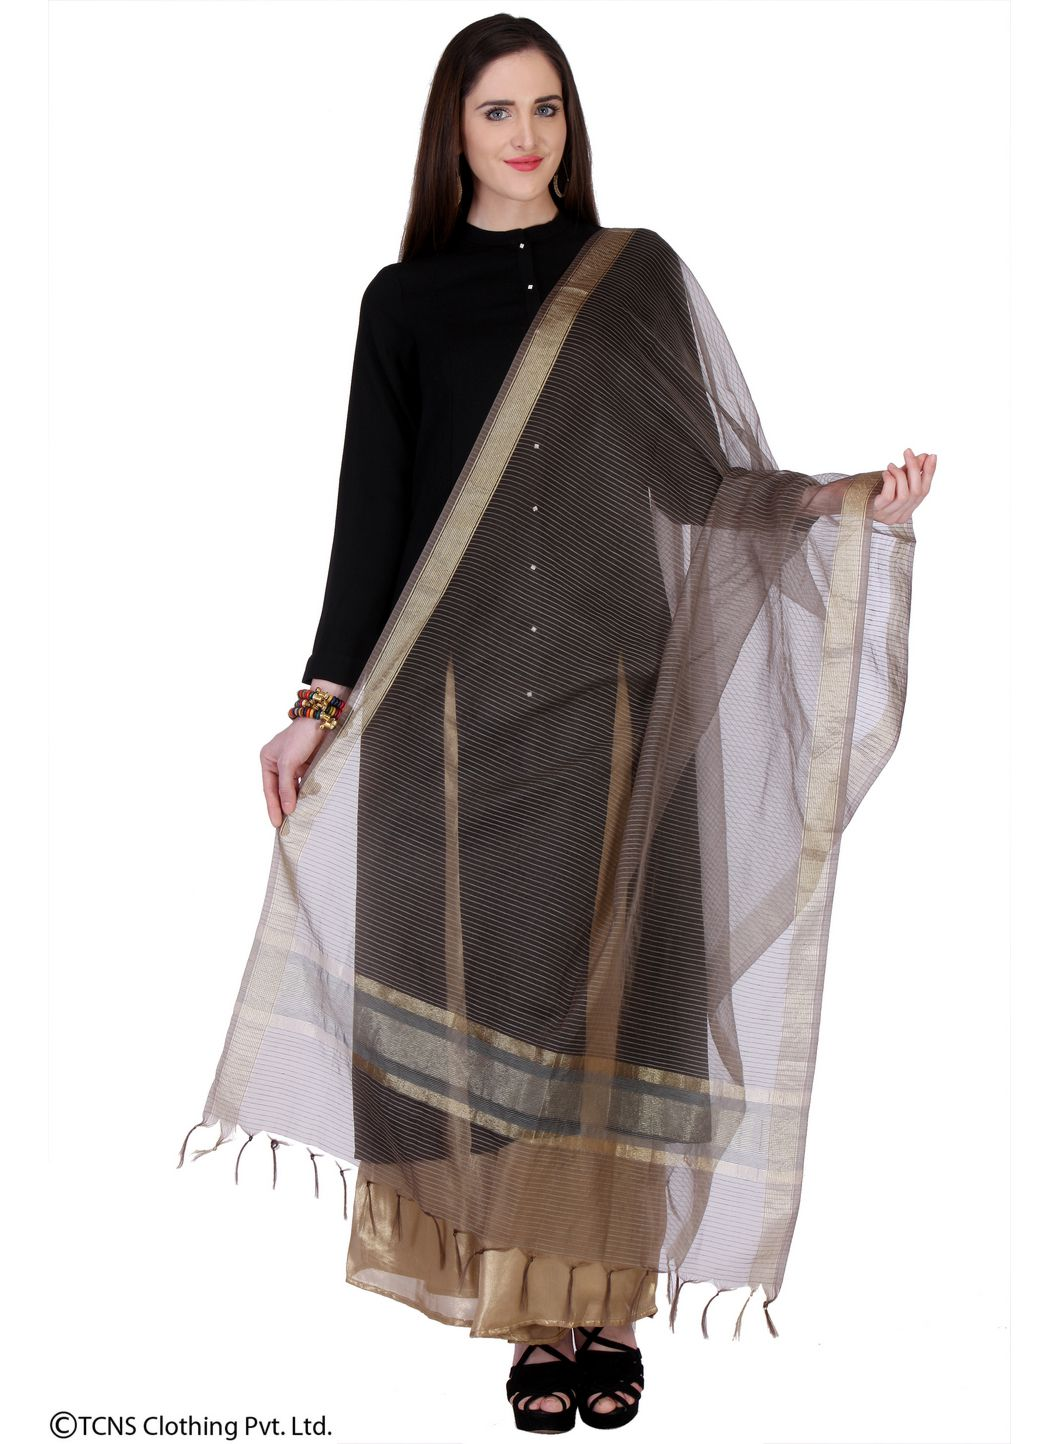 8c228eecf0d W Black Cotton Dupatta Price in India - Buy W Black Cotton Dupatta Online  at Snapdeal